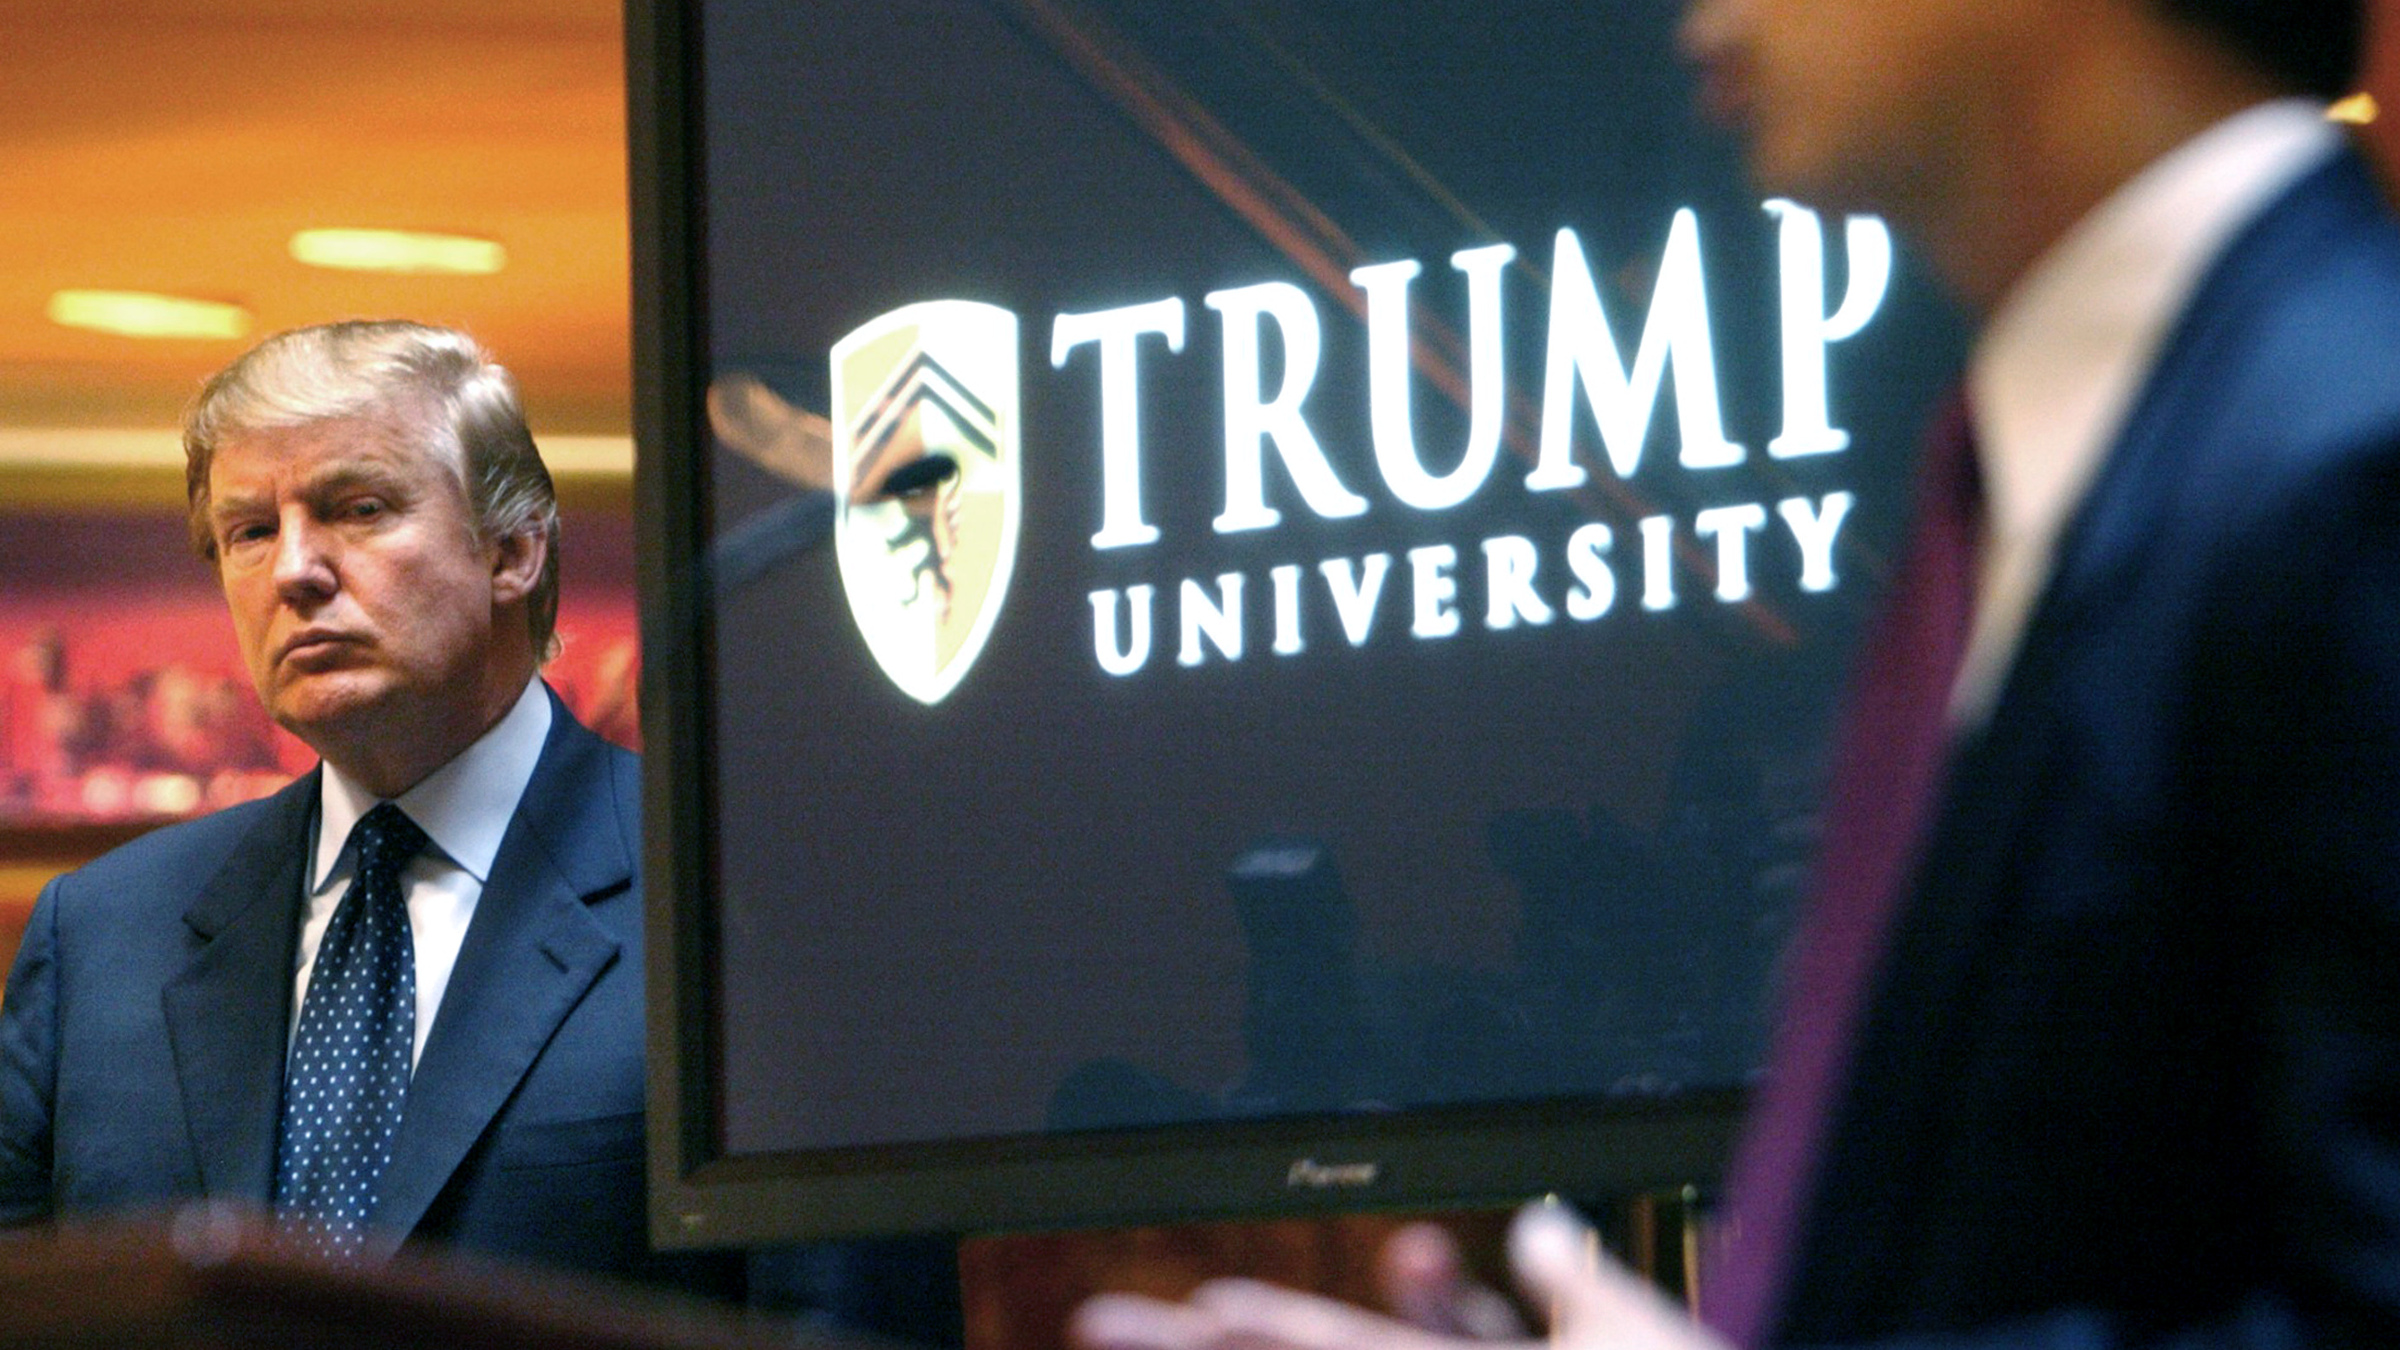 """In this May 23, 2005 file photo, real estate mogul and Reality TV star Donald Trump, left, listens as Michael Sexton introduces him at a news conference in New York where he announced the establishment of Trump University. New York Attorney General Eric Schneiderman is suing Trump for $40 million, saying that """"Trump University"""" didn't deliver on its advertised promise to make students rich, but instead steered them into expensive yet mostly useless seminars."""